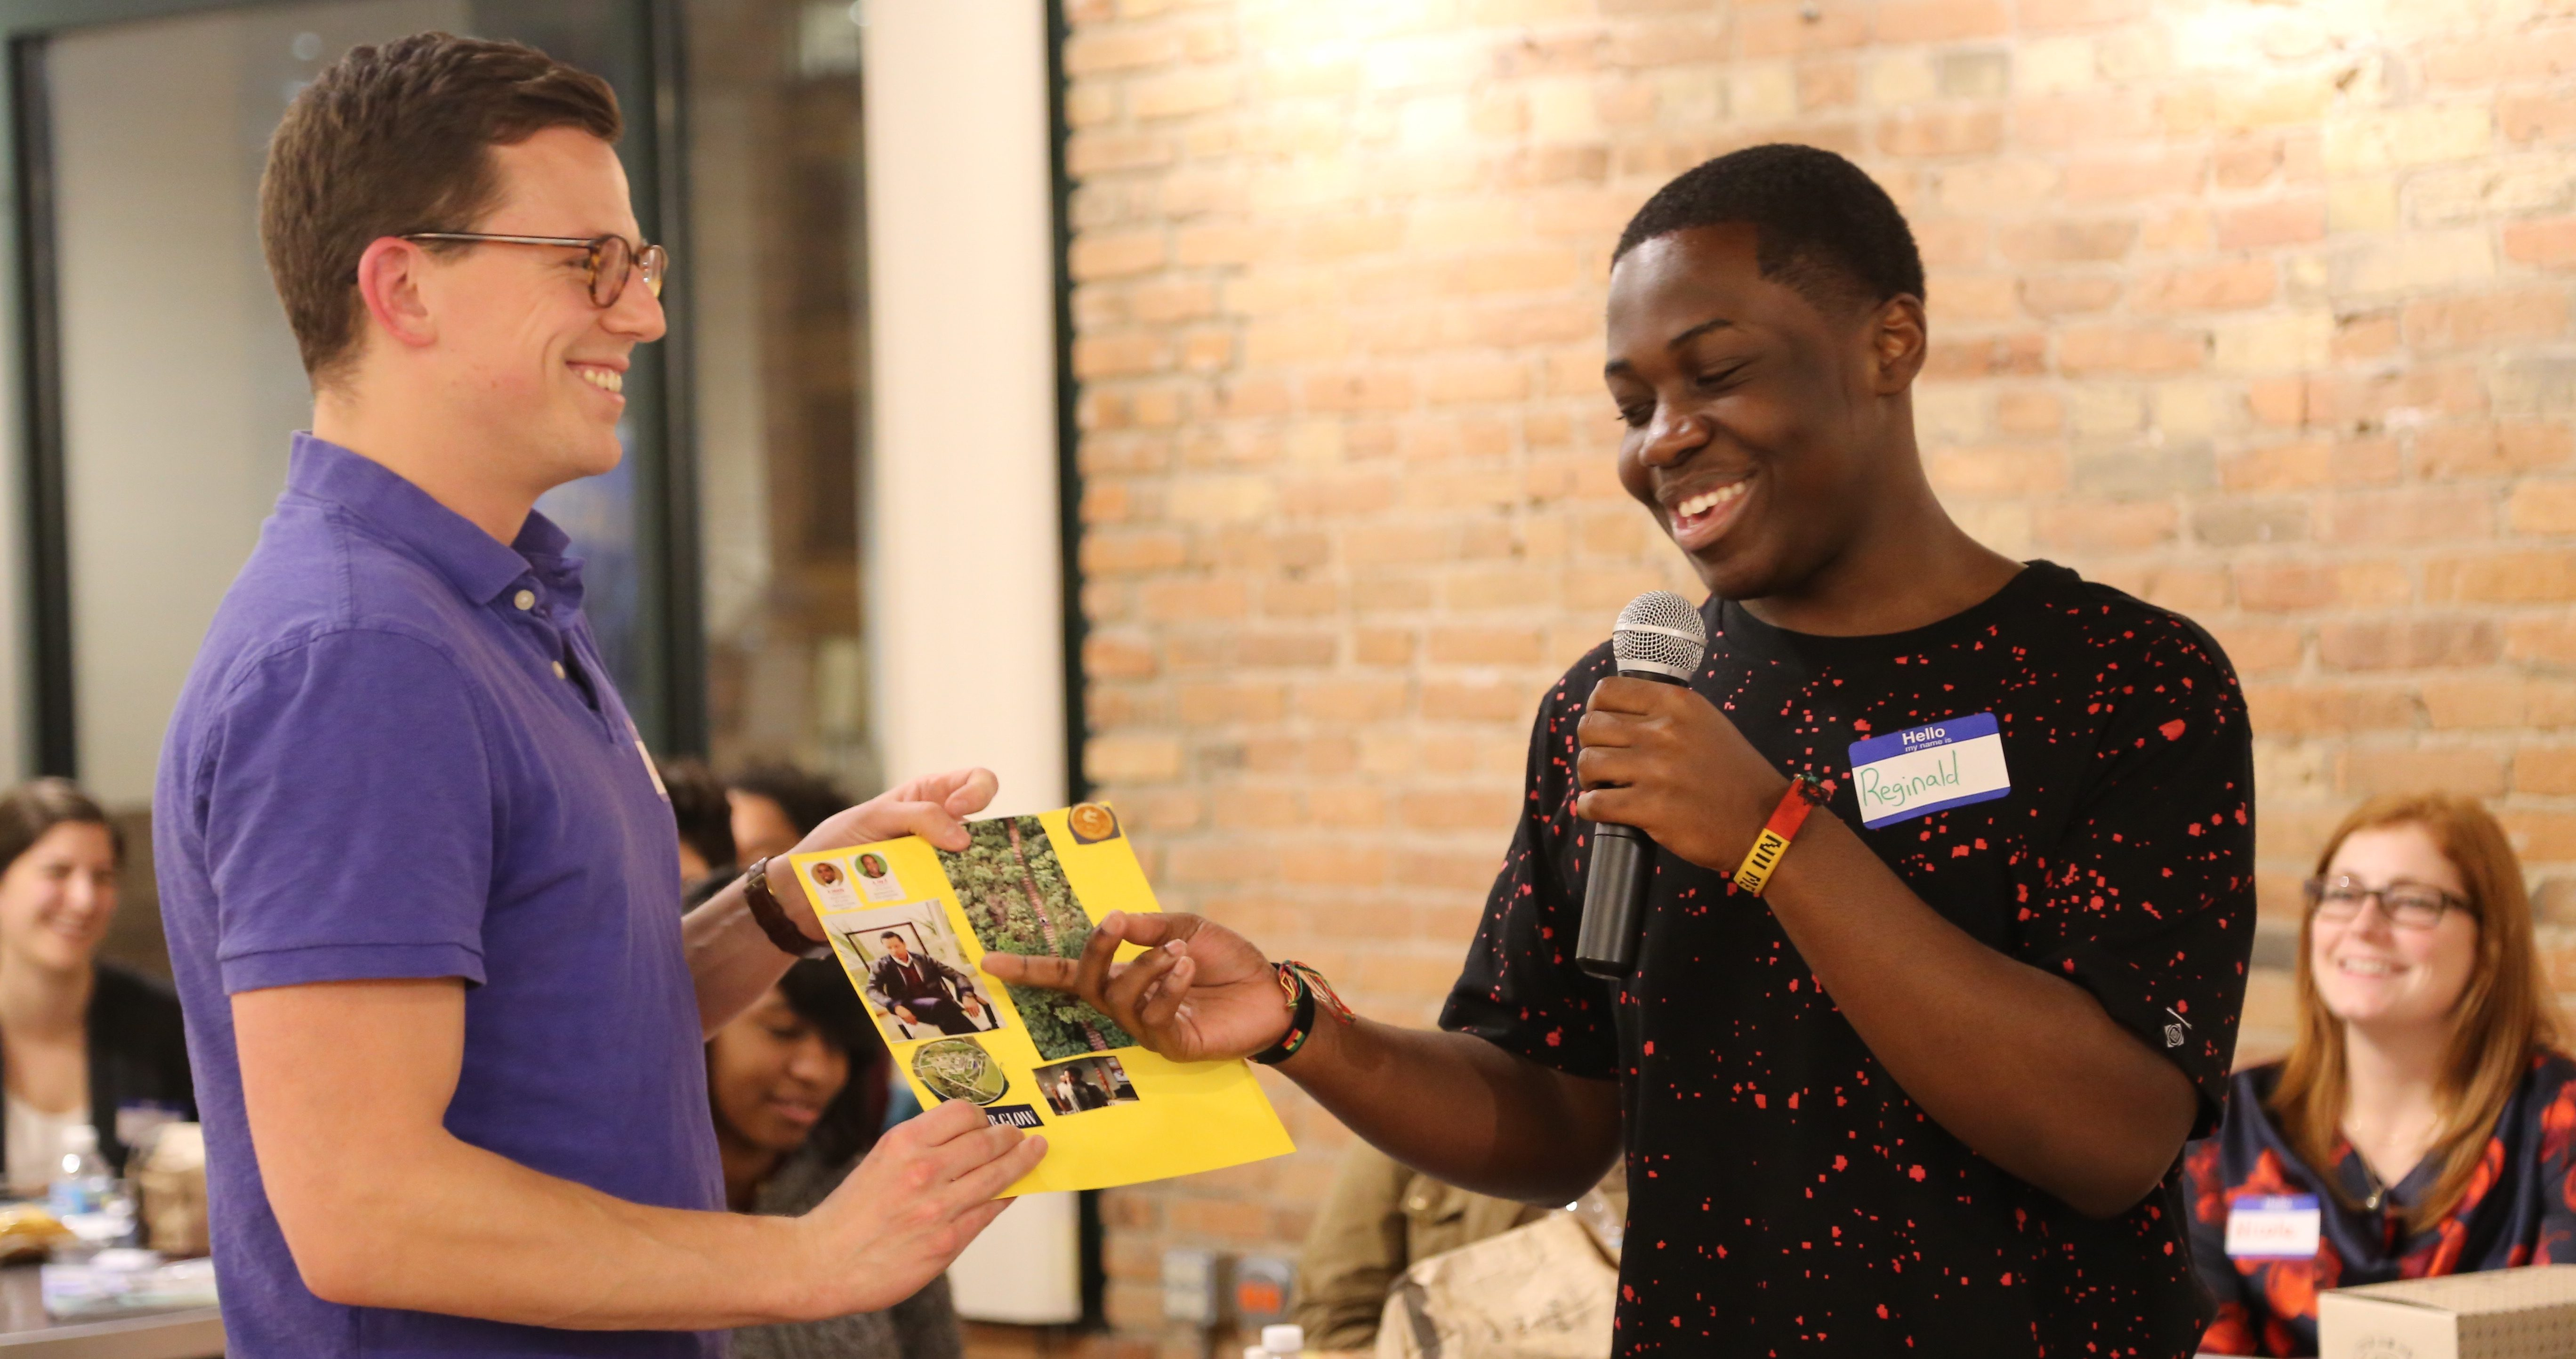 Volunteer. Our corporate mentor Chris helps teen Reginald share his vision  board with a group of peers.